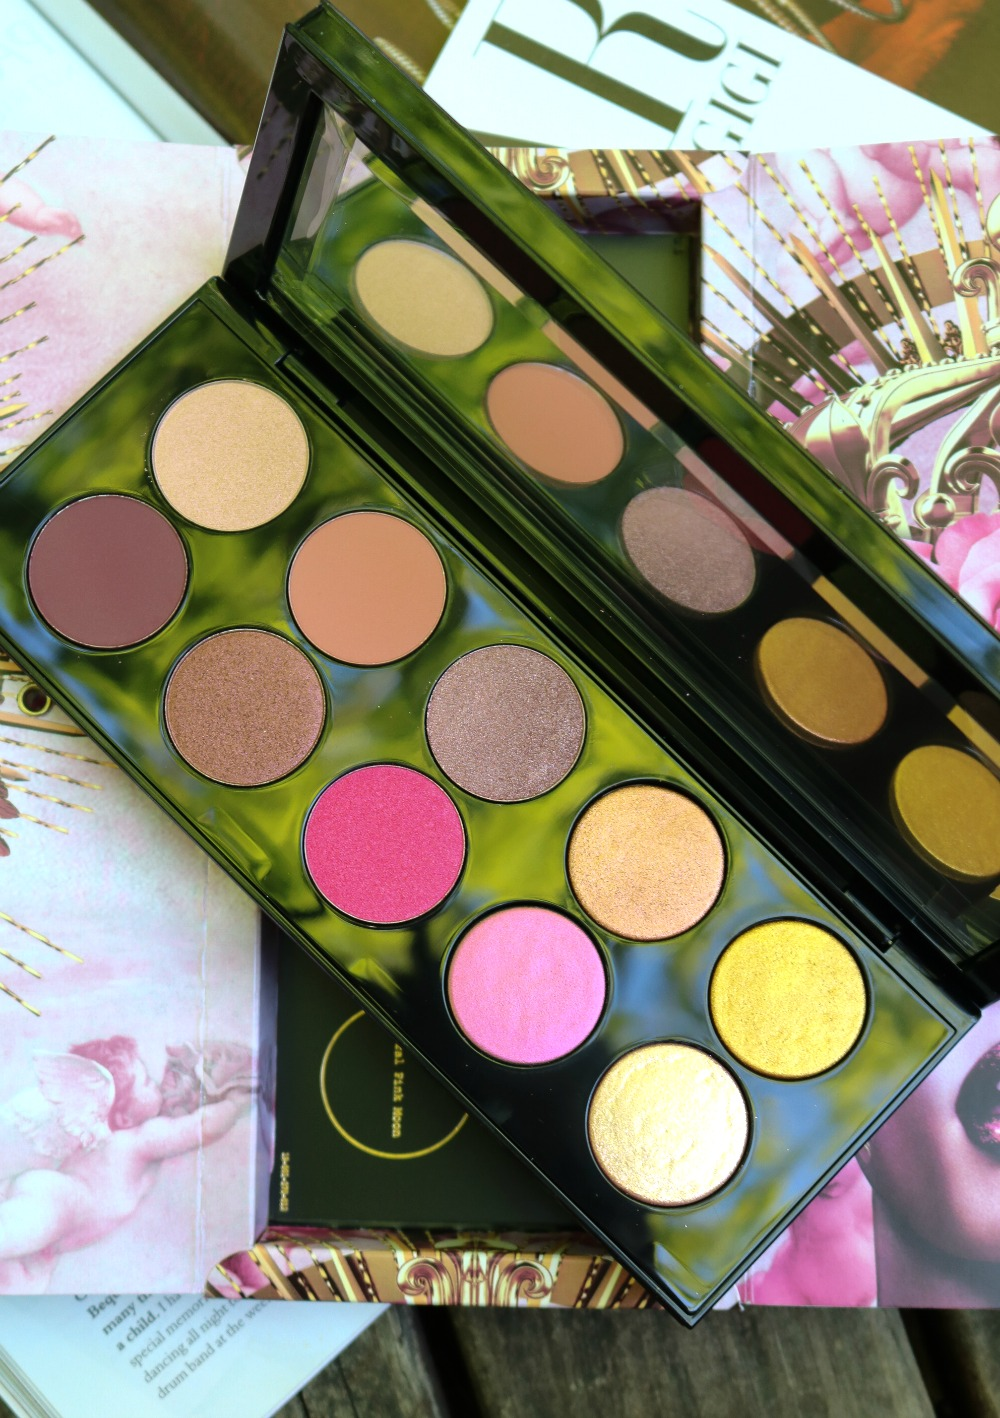 Pat McGrath Divine Rose II Eyeshadow Palette Review I Dreaminlace.com